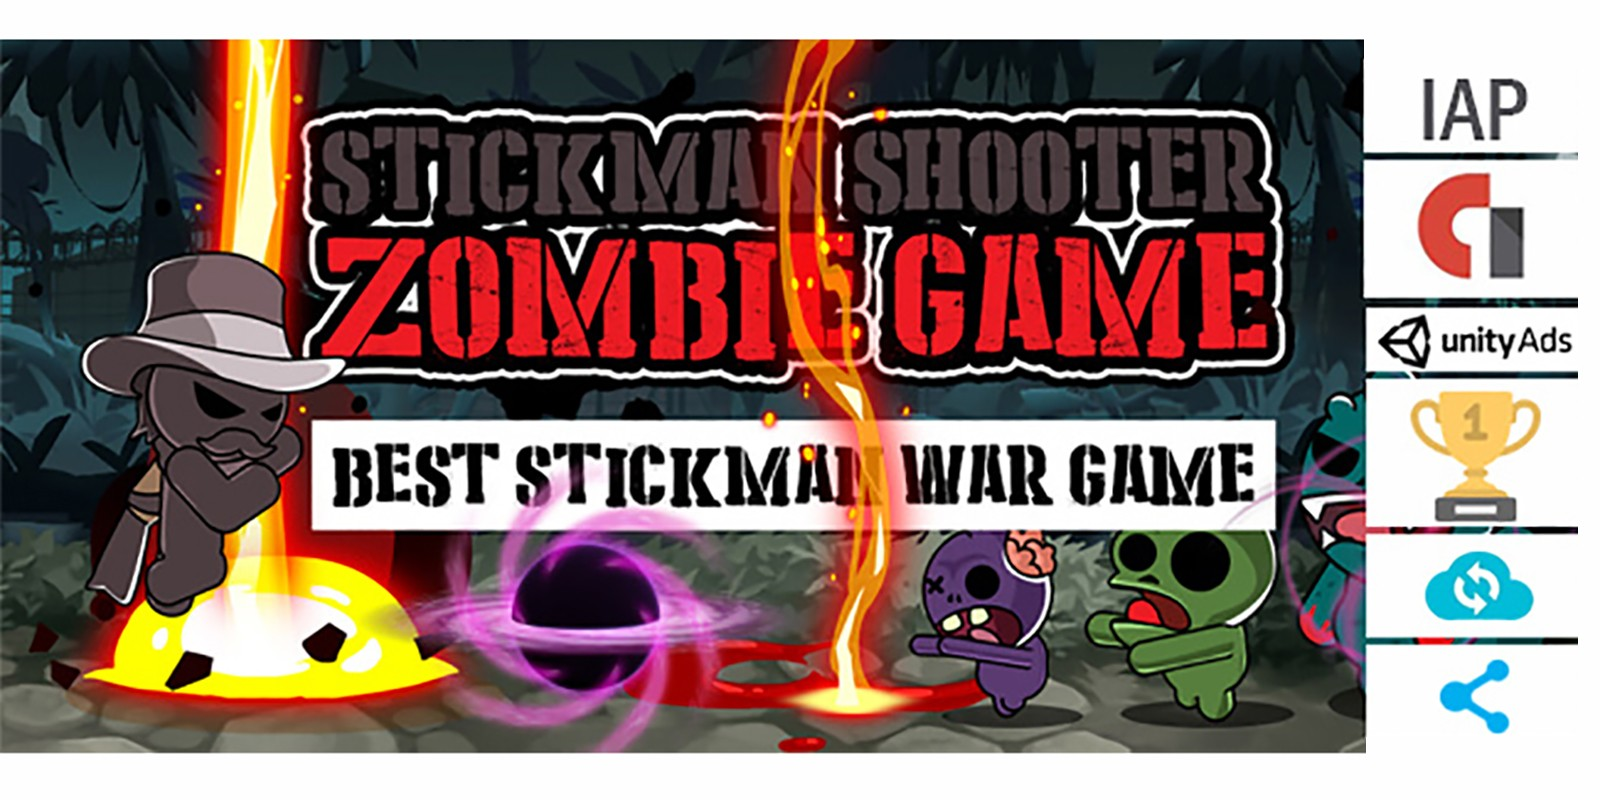 Stickman Shooter - Complete Unity Project